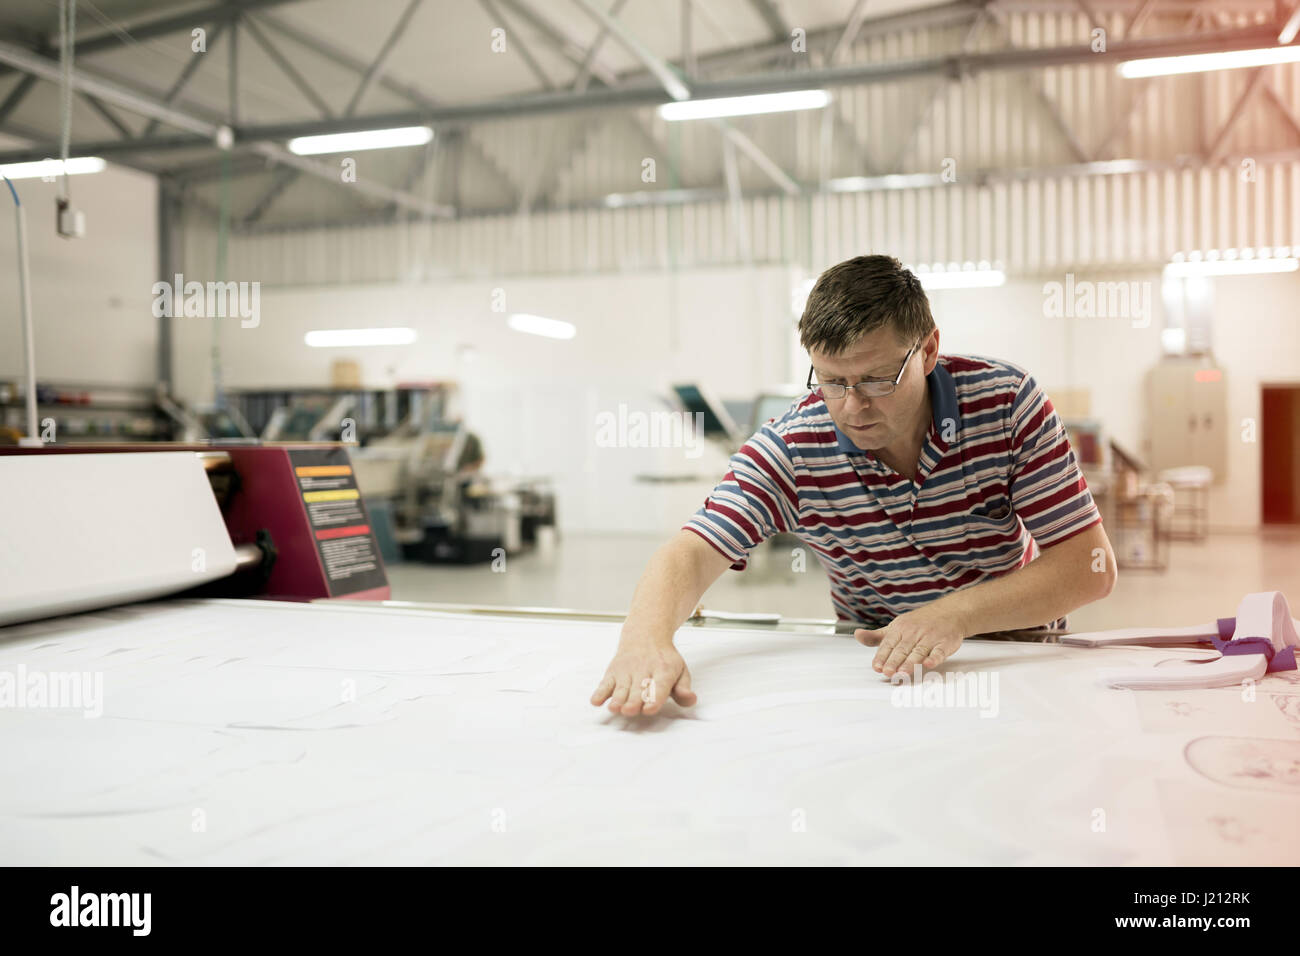 Creative designer working on project - Stock Image